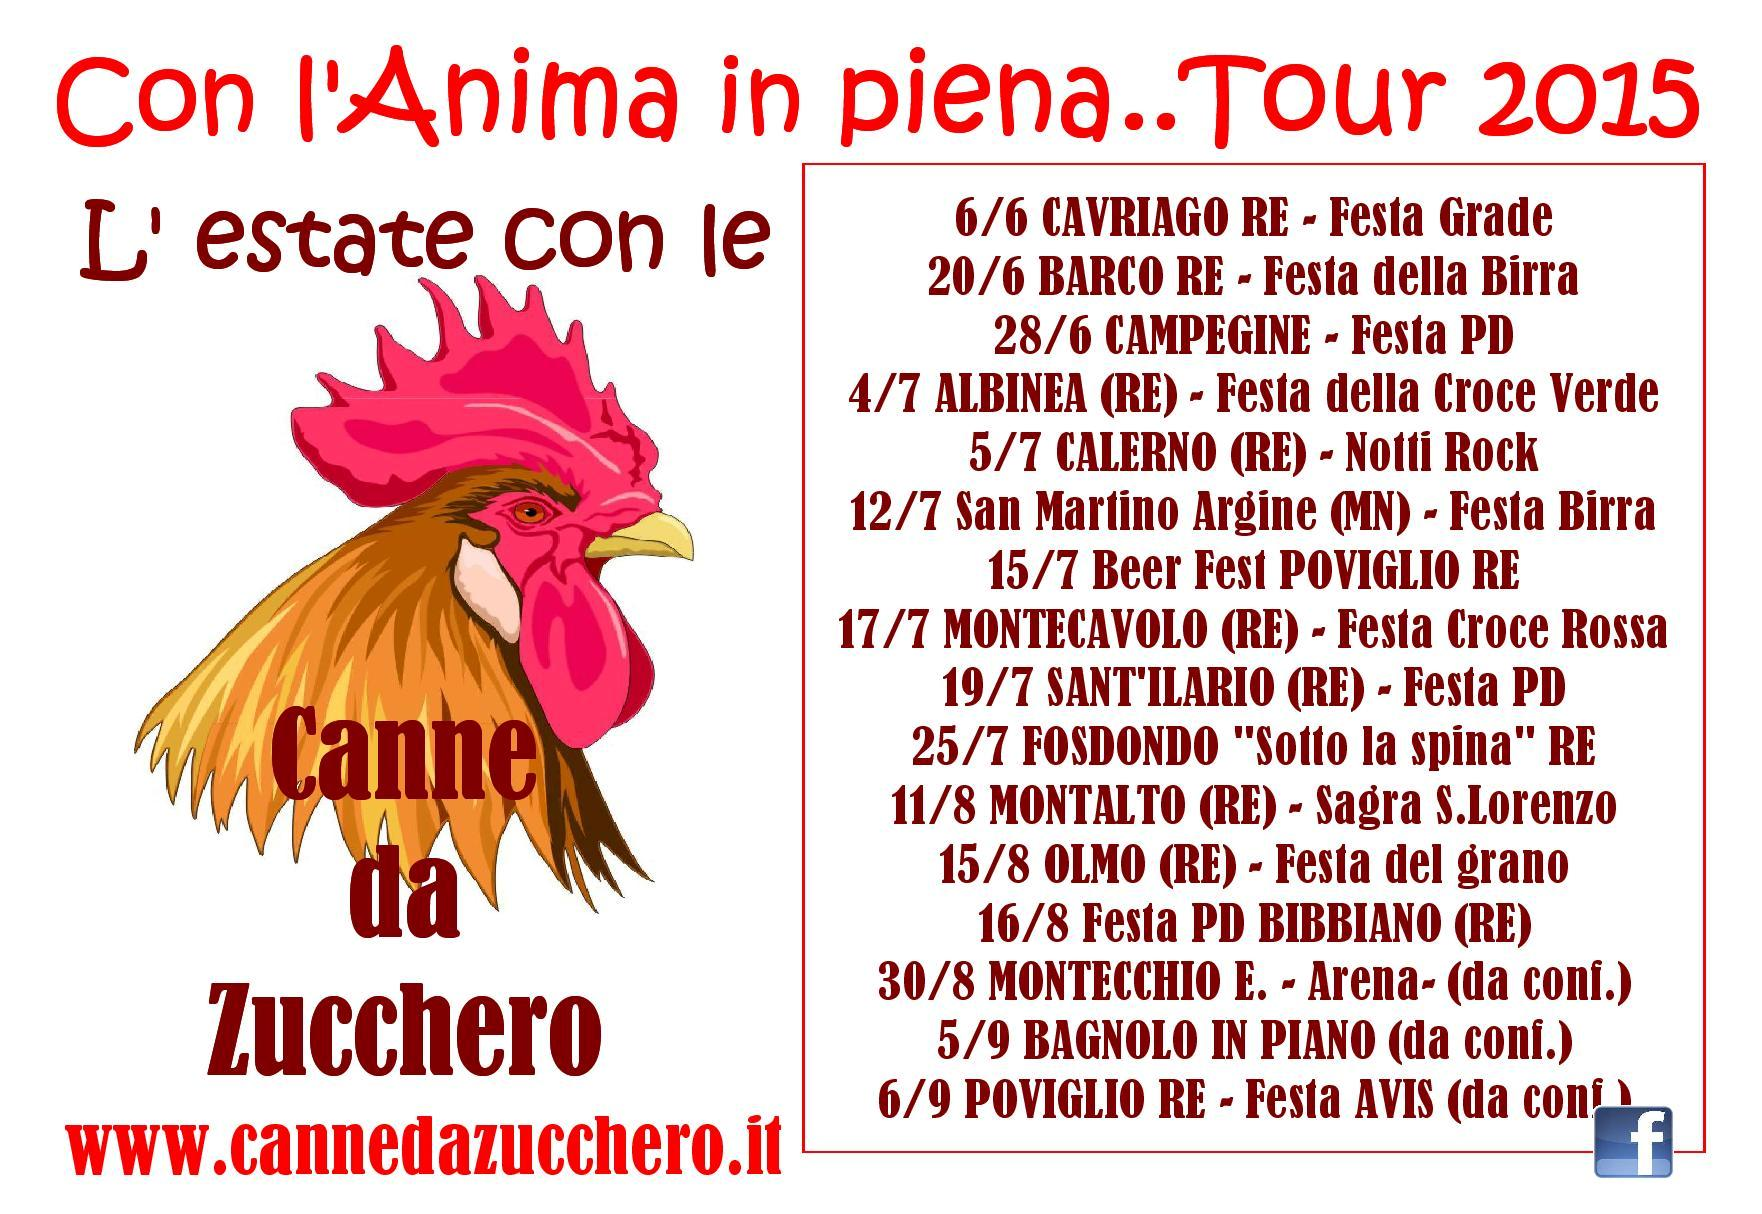 Con l'anima in piena....tour 2015